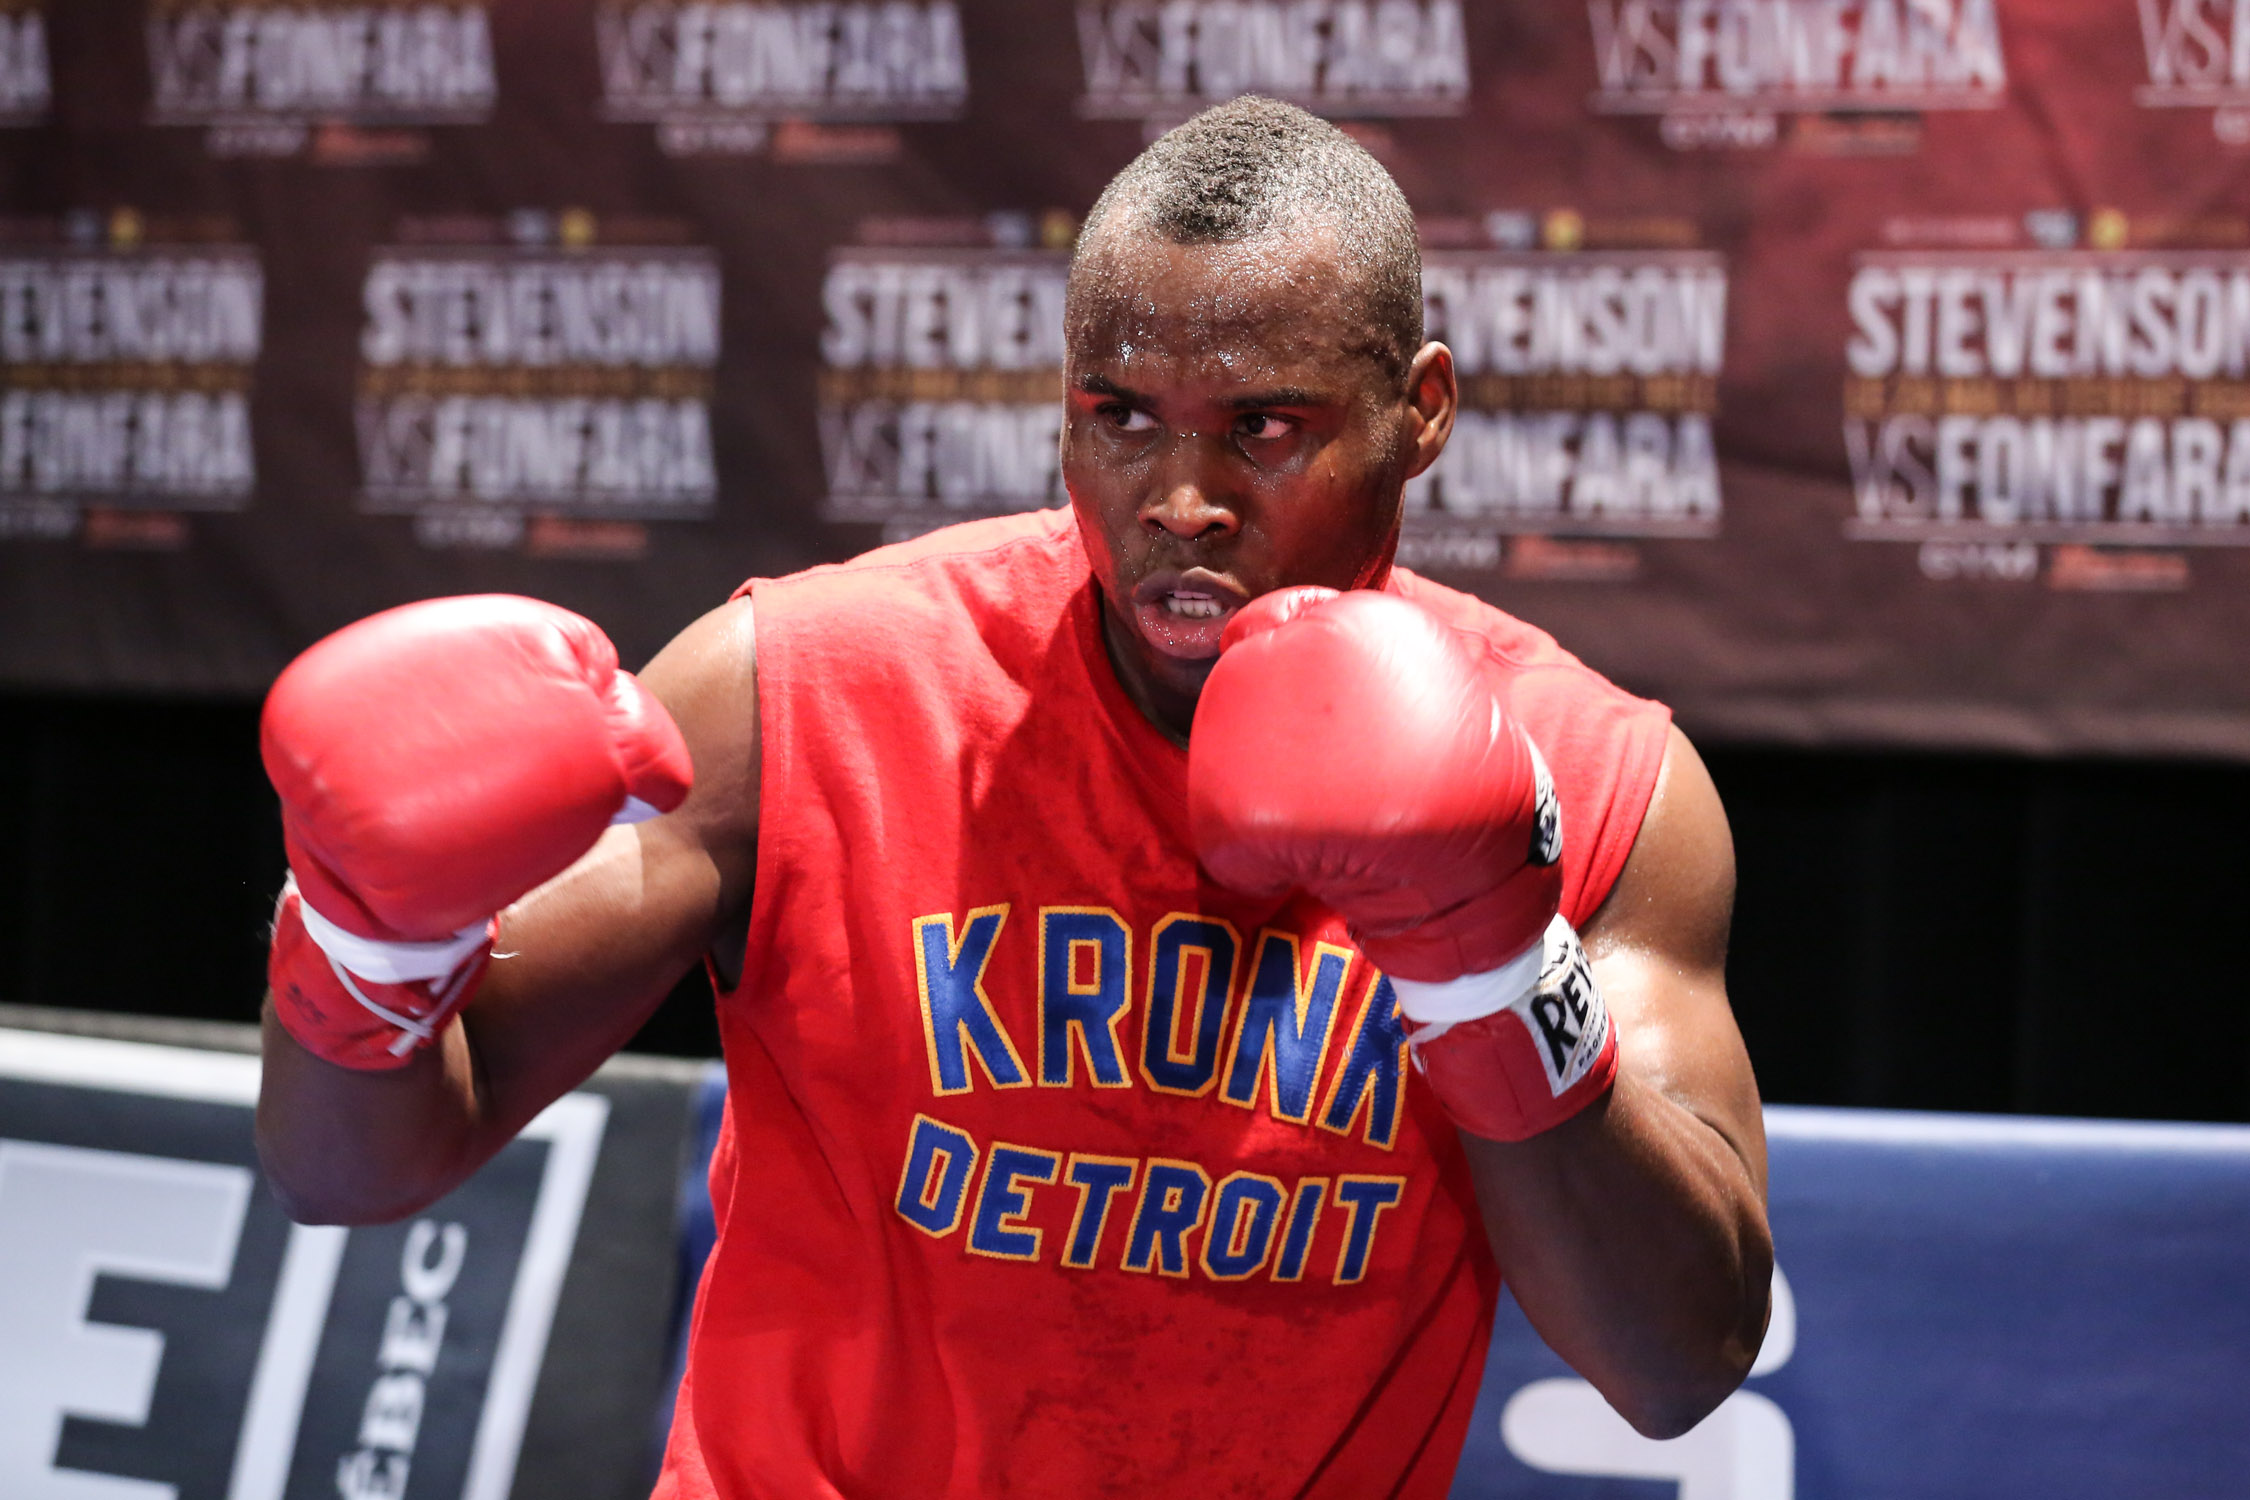 While some criticize Adonis Superman Stevenson when it comes to his record and level of opponents he feels that hes done enough to earn respect and